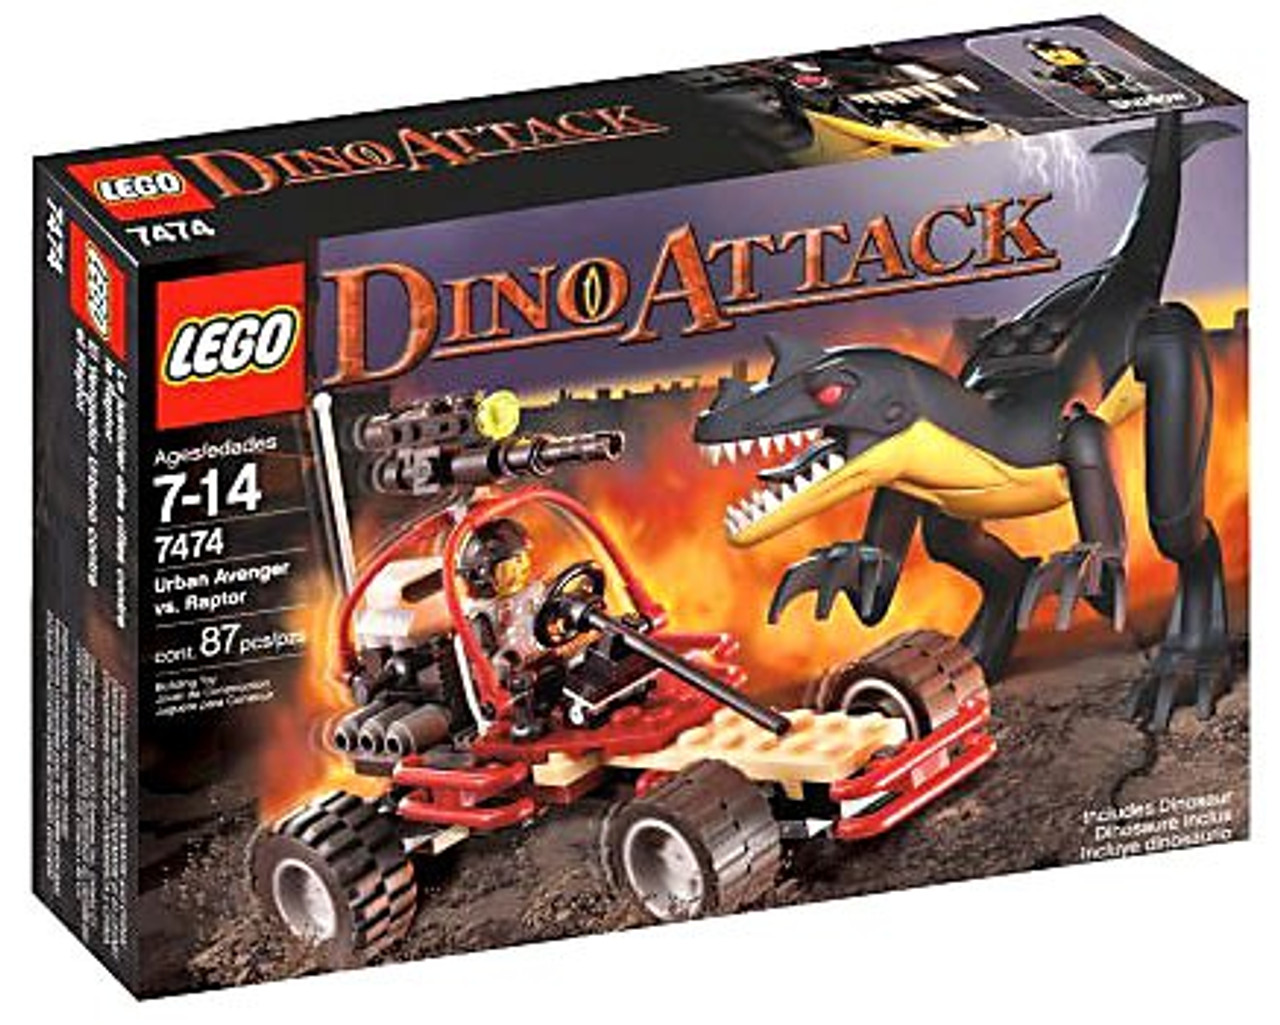 LEGO Dino Attack Urban Avenger vs. Raptor Set #7474